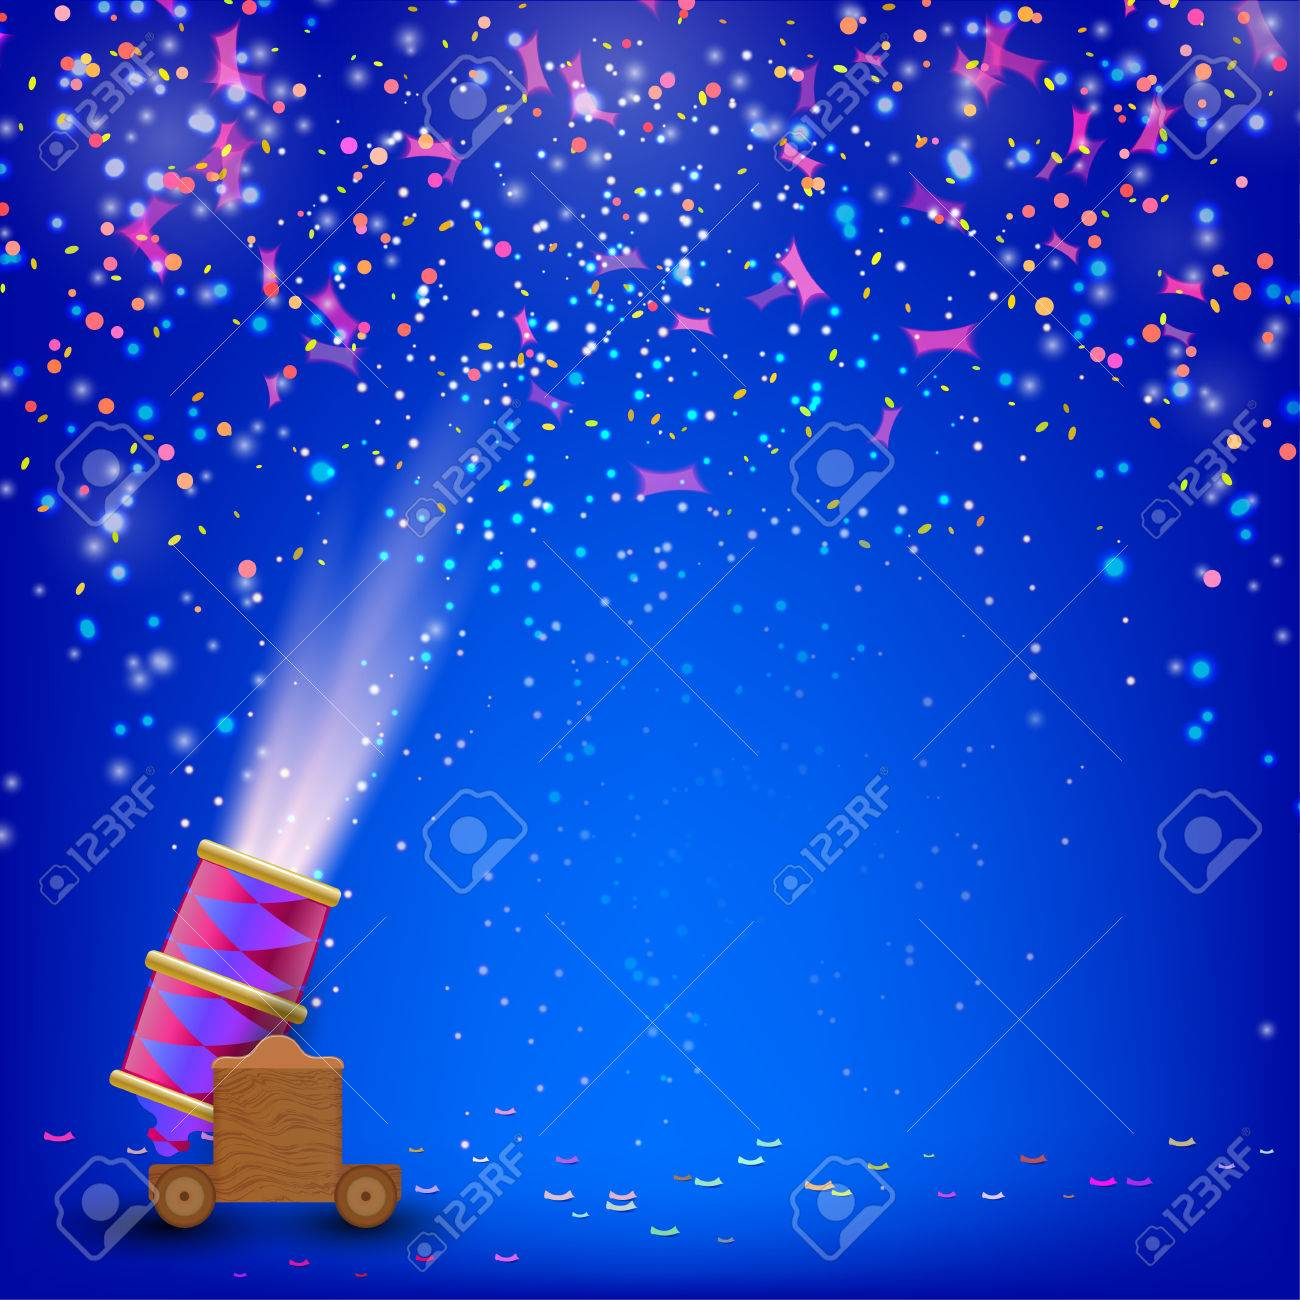 Festival Blue Background Festive Background With Shooting Guns 1300x1300